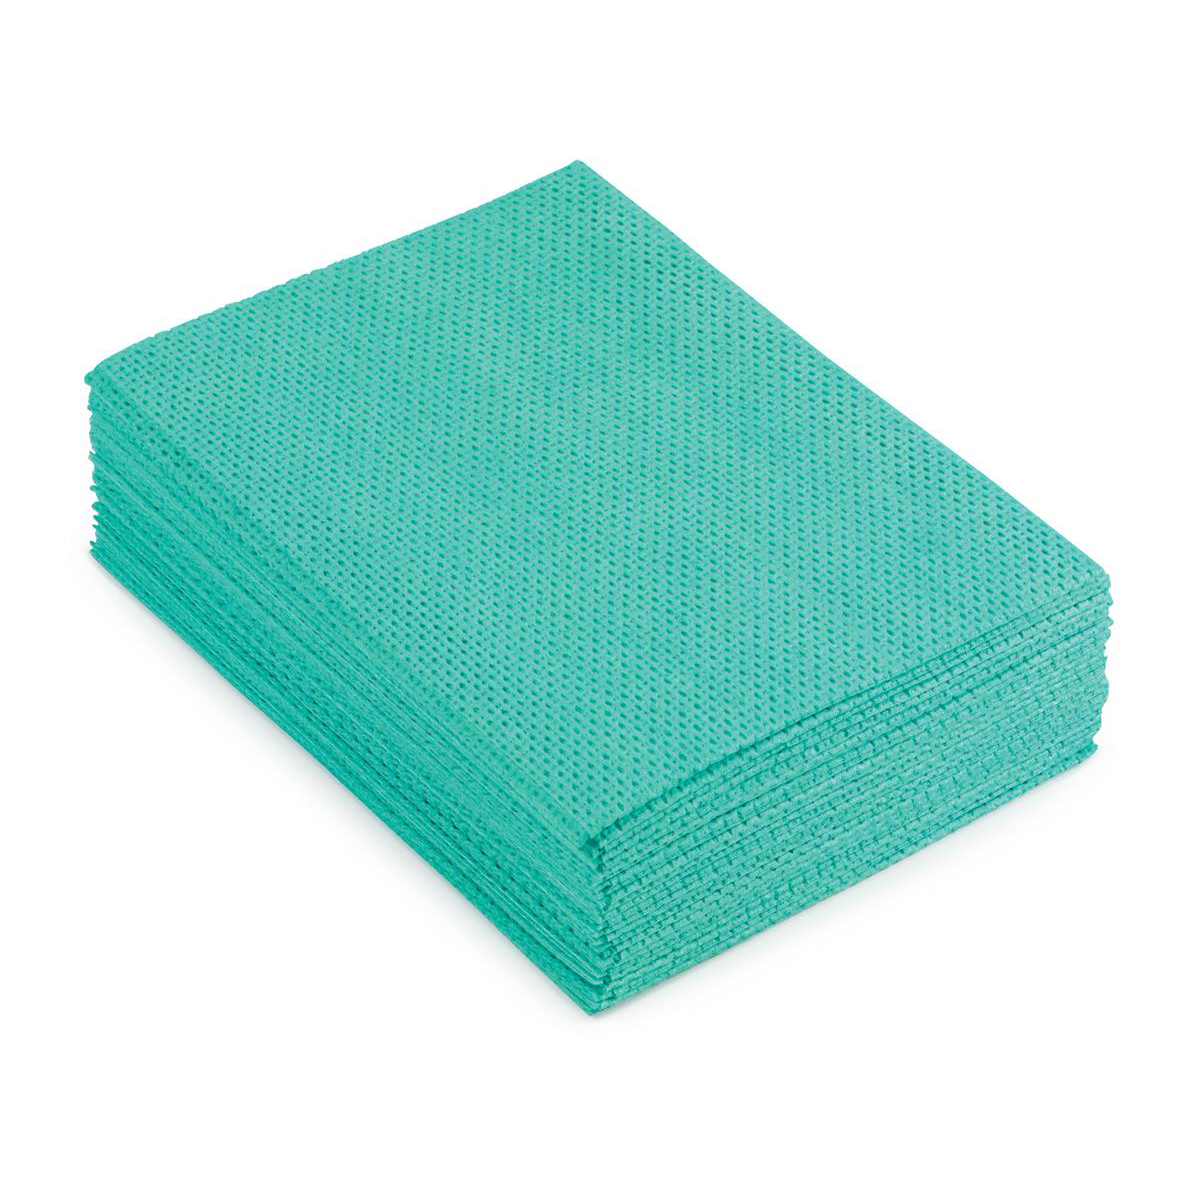 5 Star Facilities Cleaning Cloths Anti-microbial Heavy-duty 76gsm W500xL300mm Green Pack 25